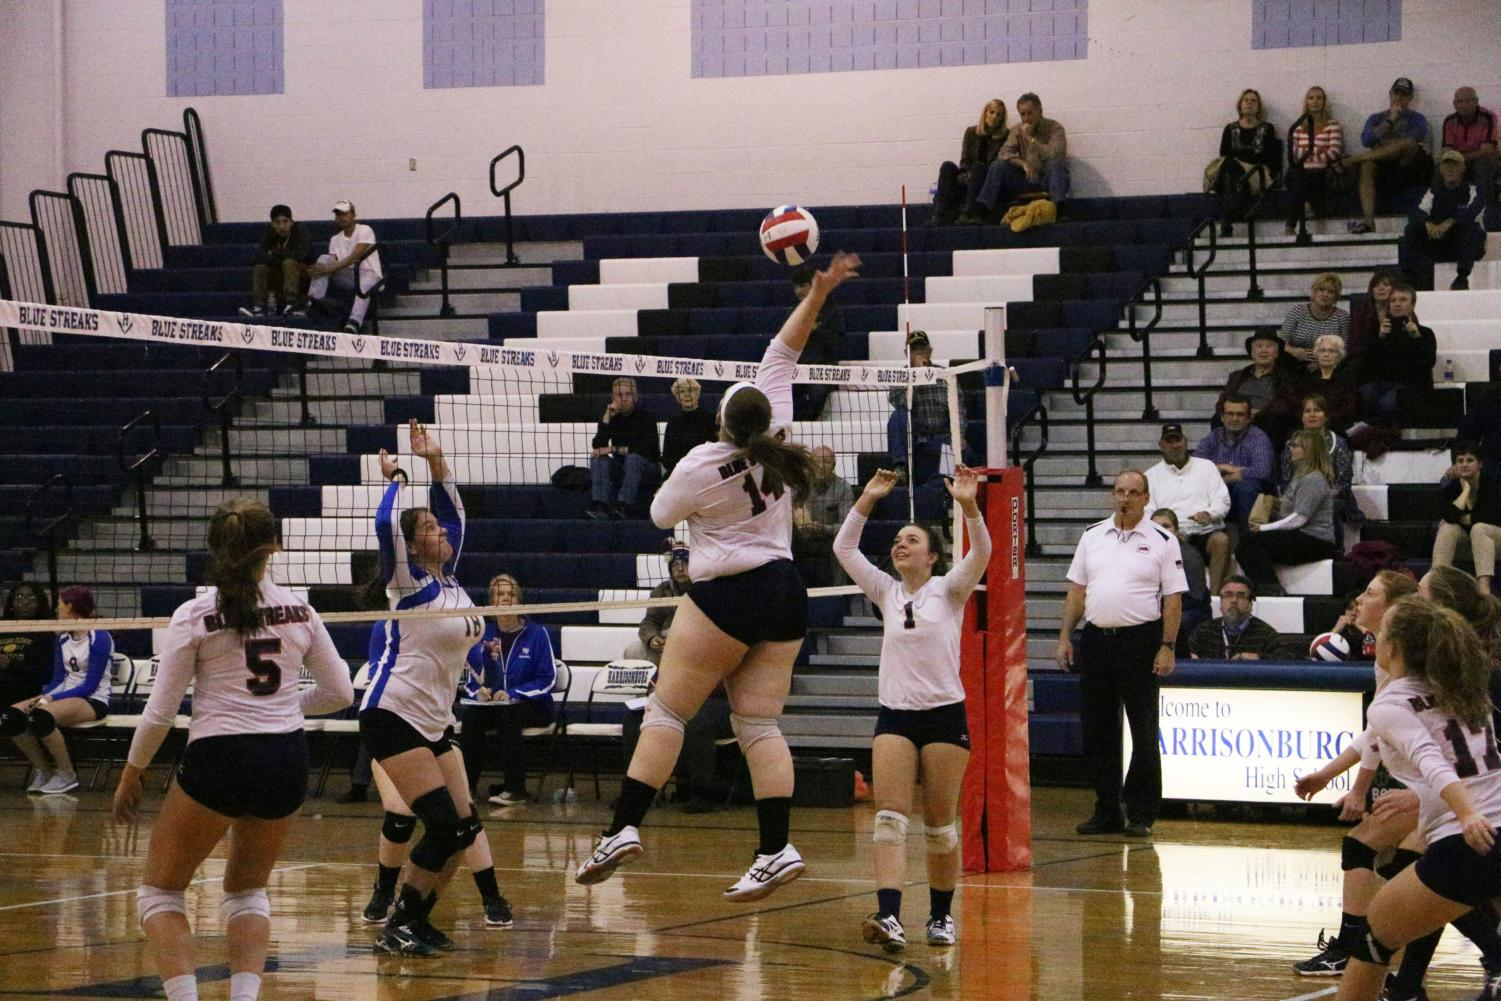 Junior Rebecca Staton returns the ball with a spike back at William Fleming.